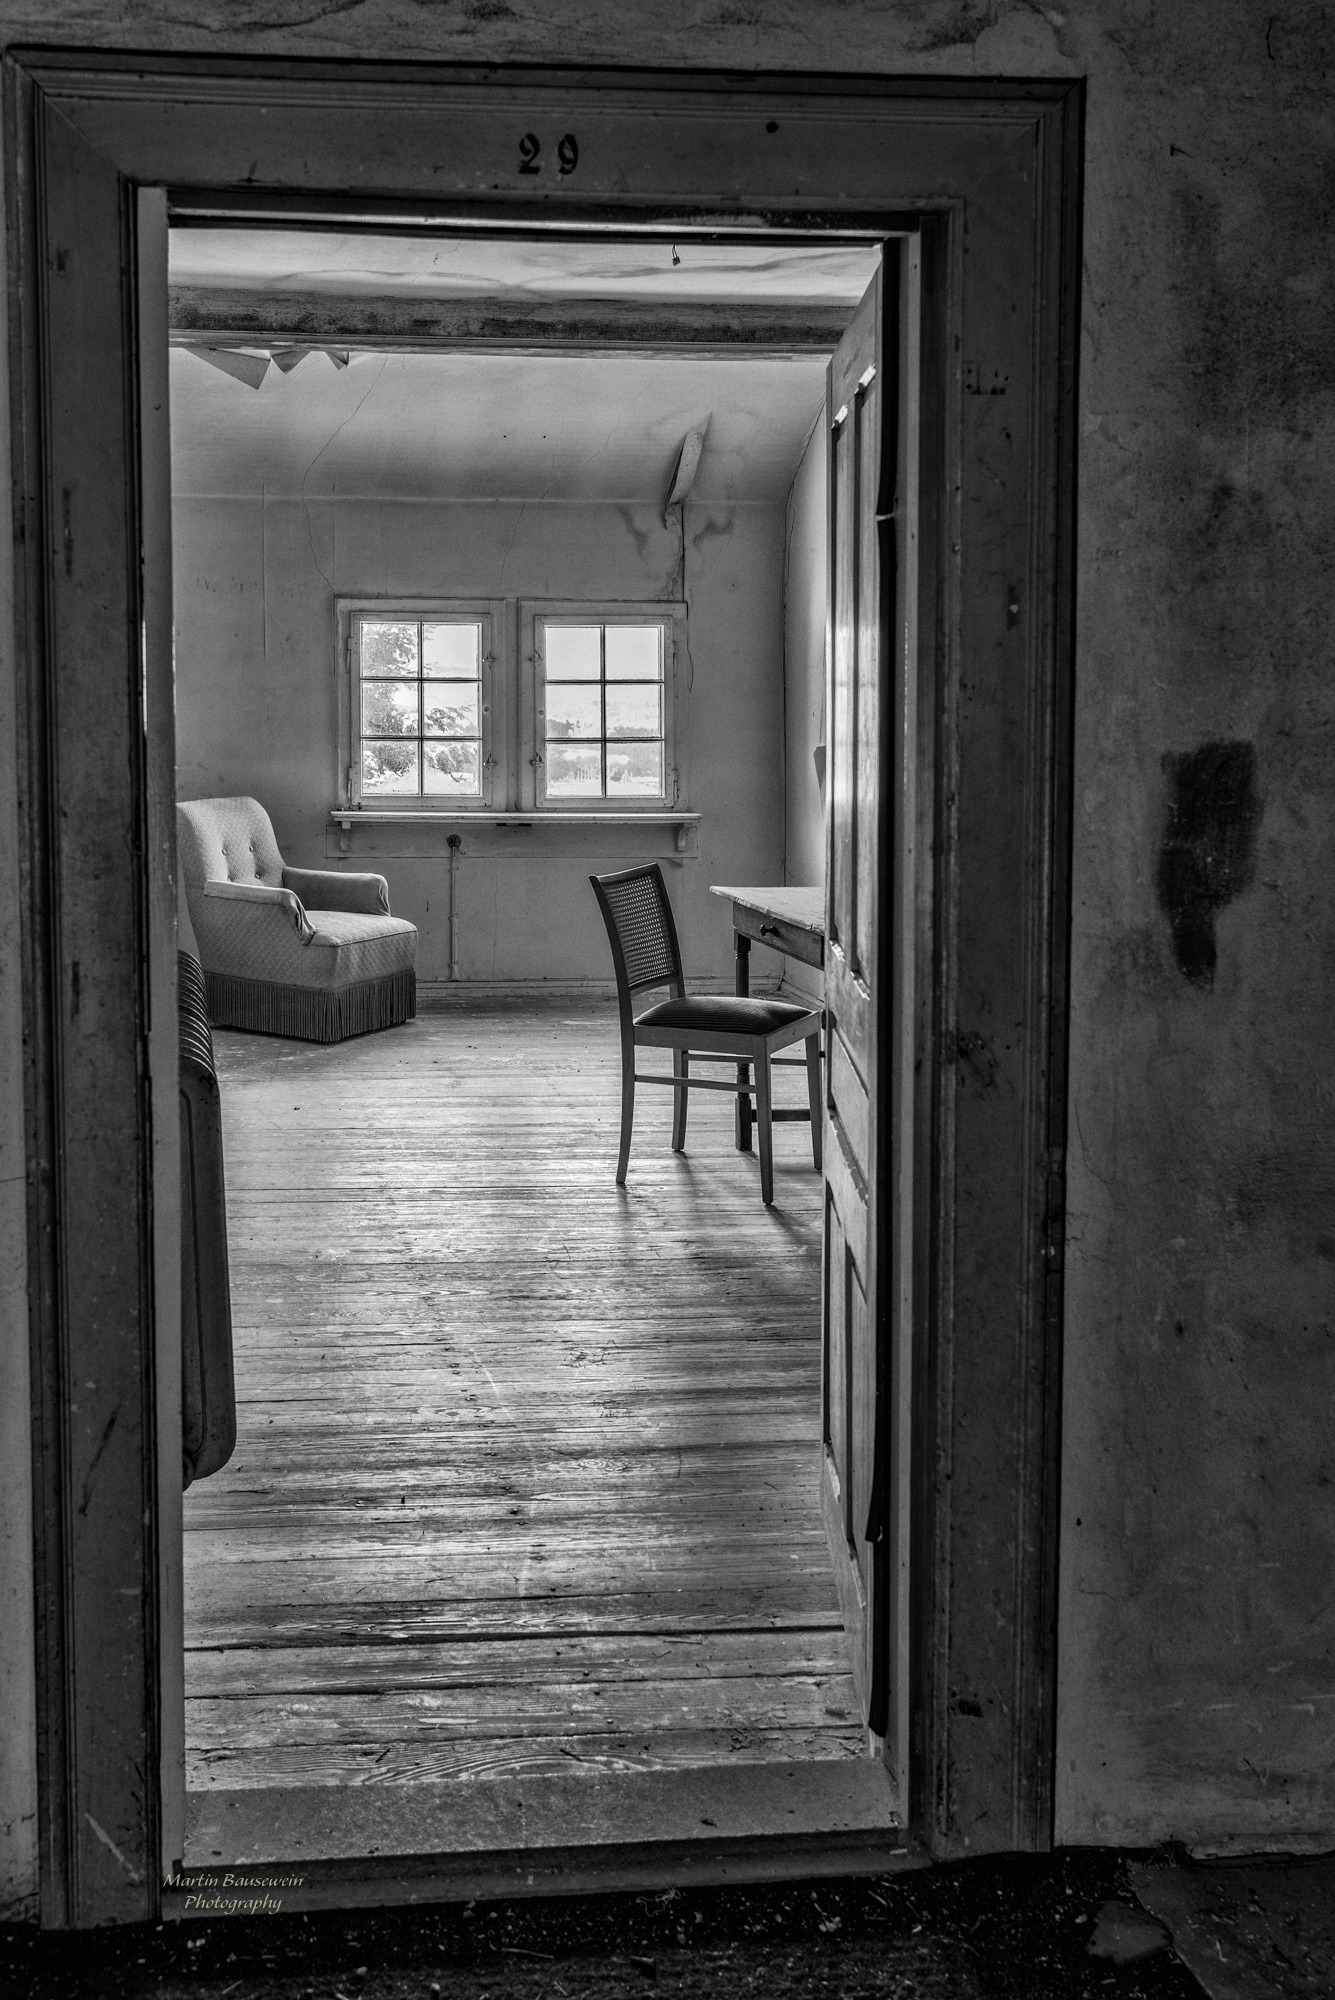 your special offer - room 29 by Martin Bausewein